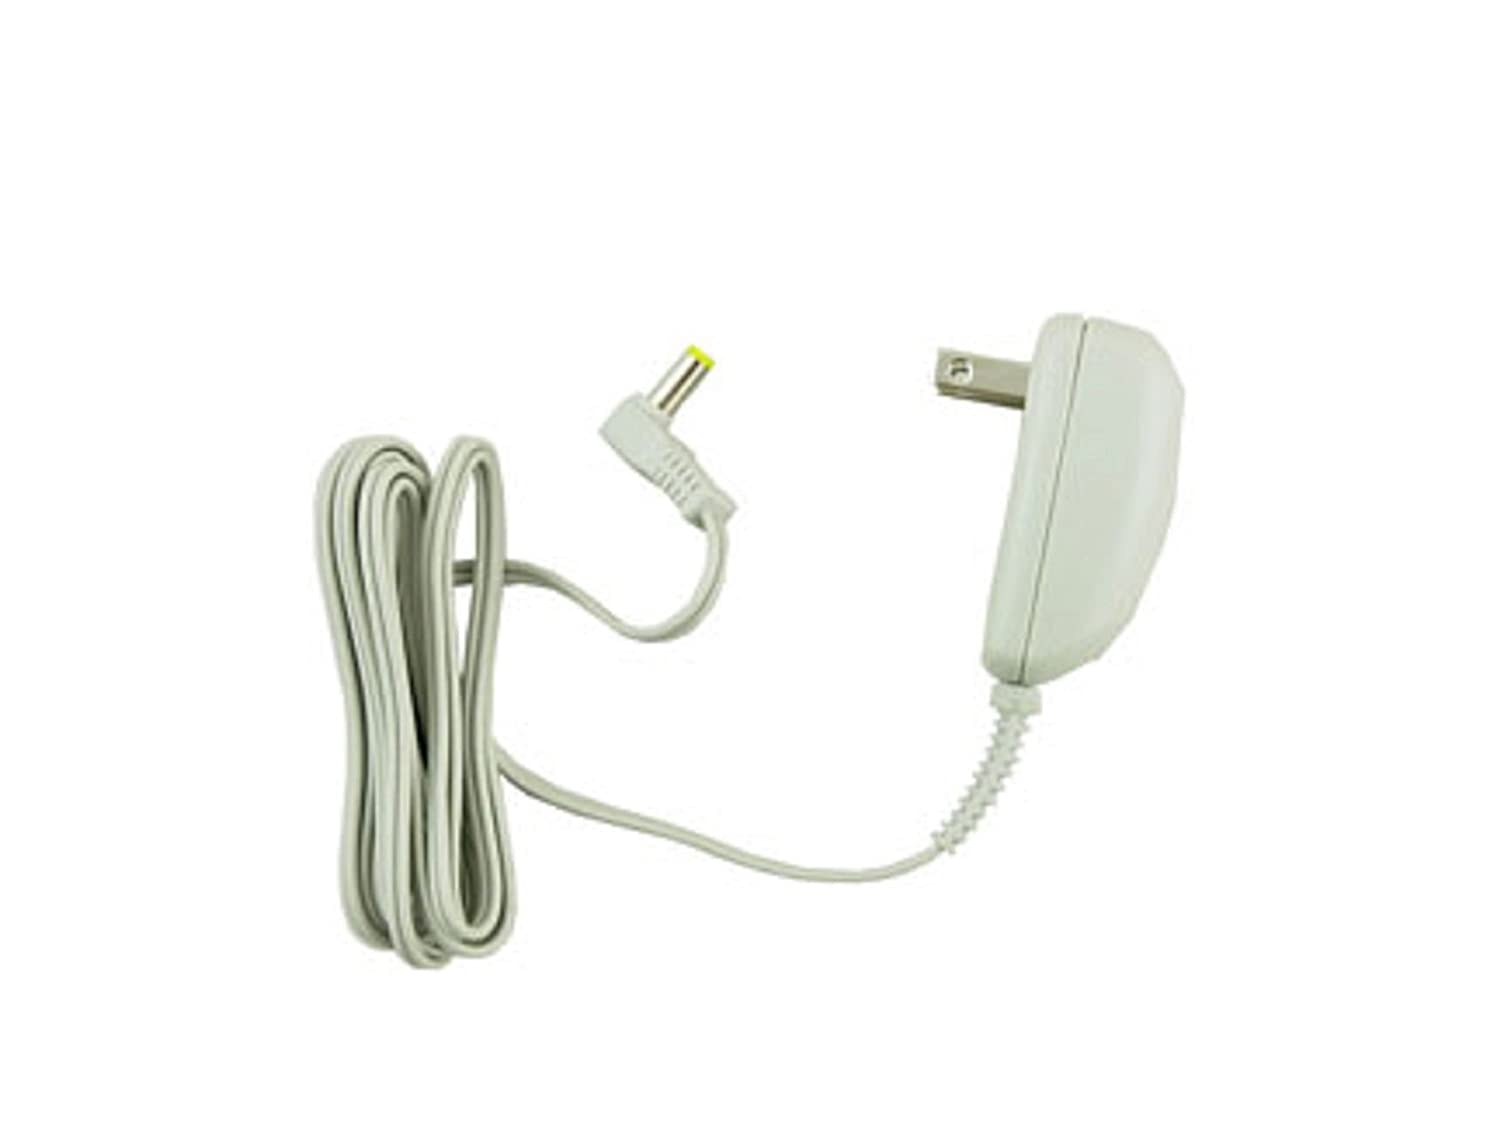 Fisher Price Replacement Swing Adaptor/Power Cord Gray L Type Connector Mattel